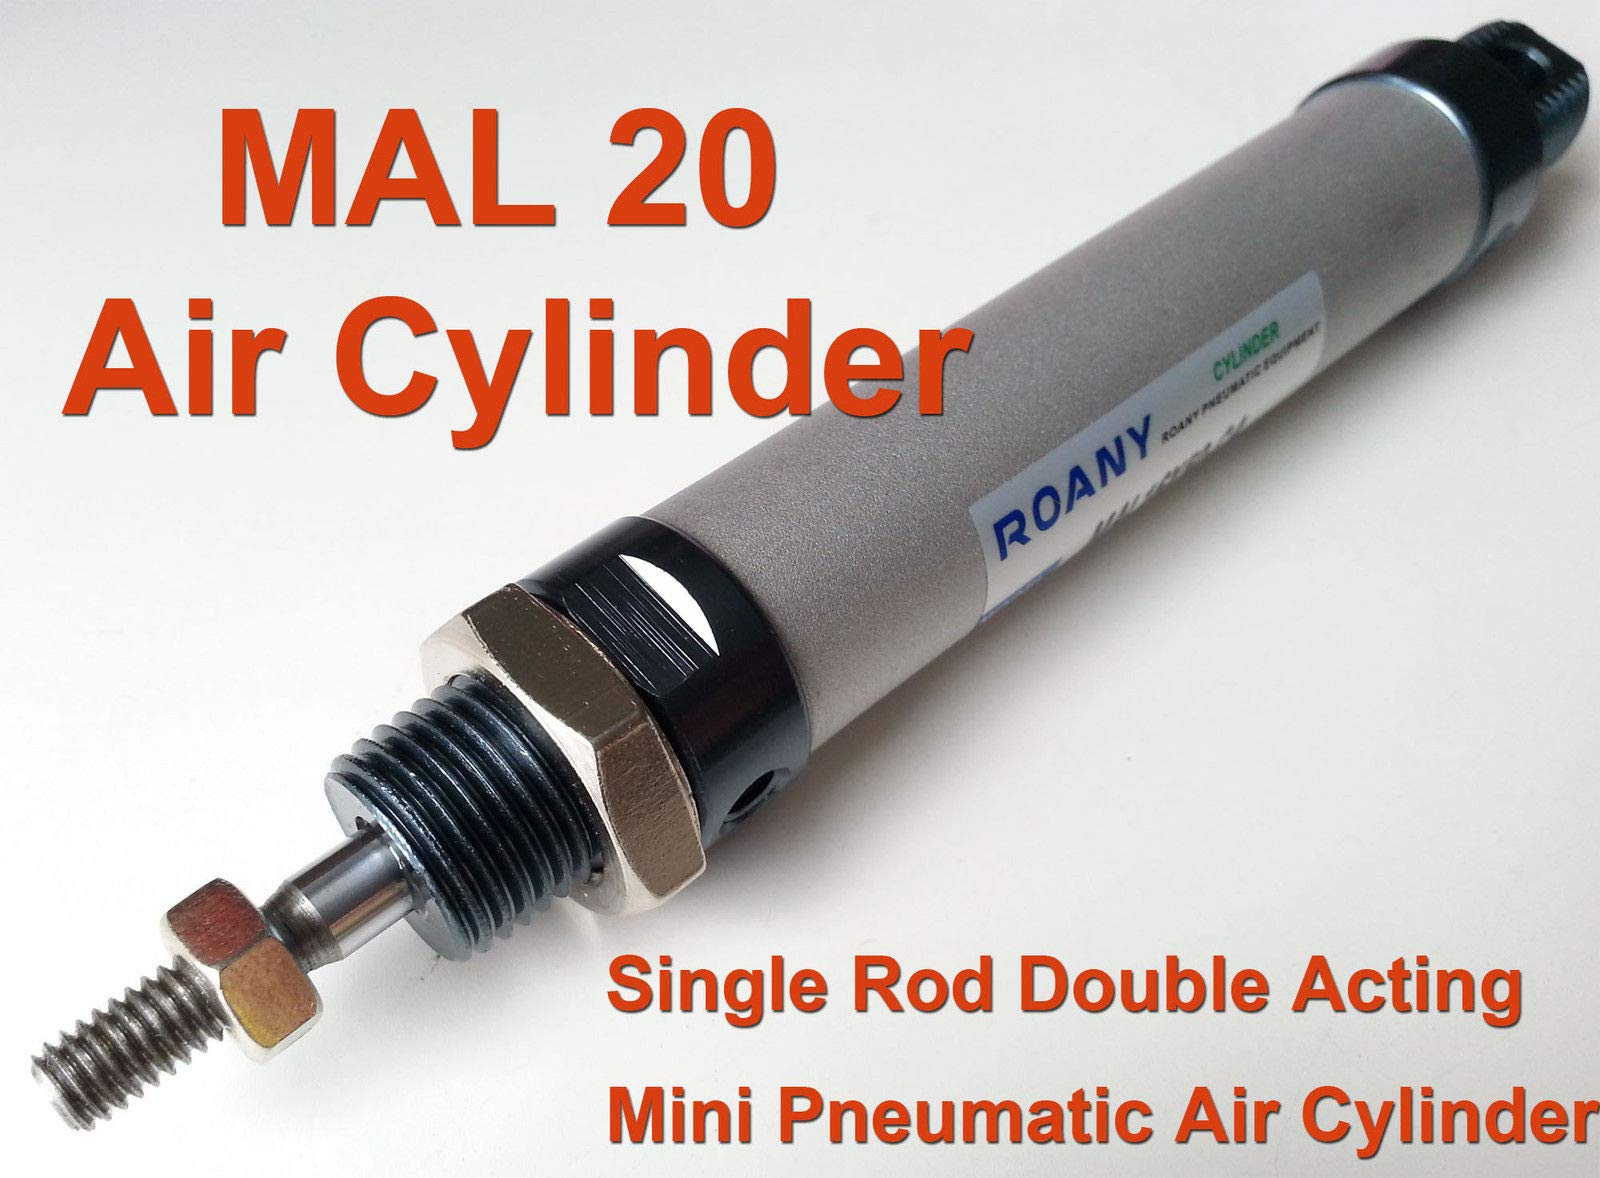 MAL 20mm x 400mm Single Rod Double Acting Mini Pneumatic Air Cylinder 20-400